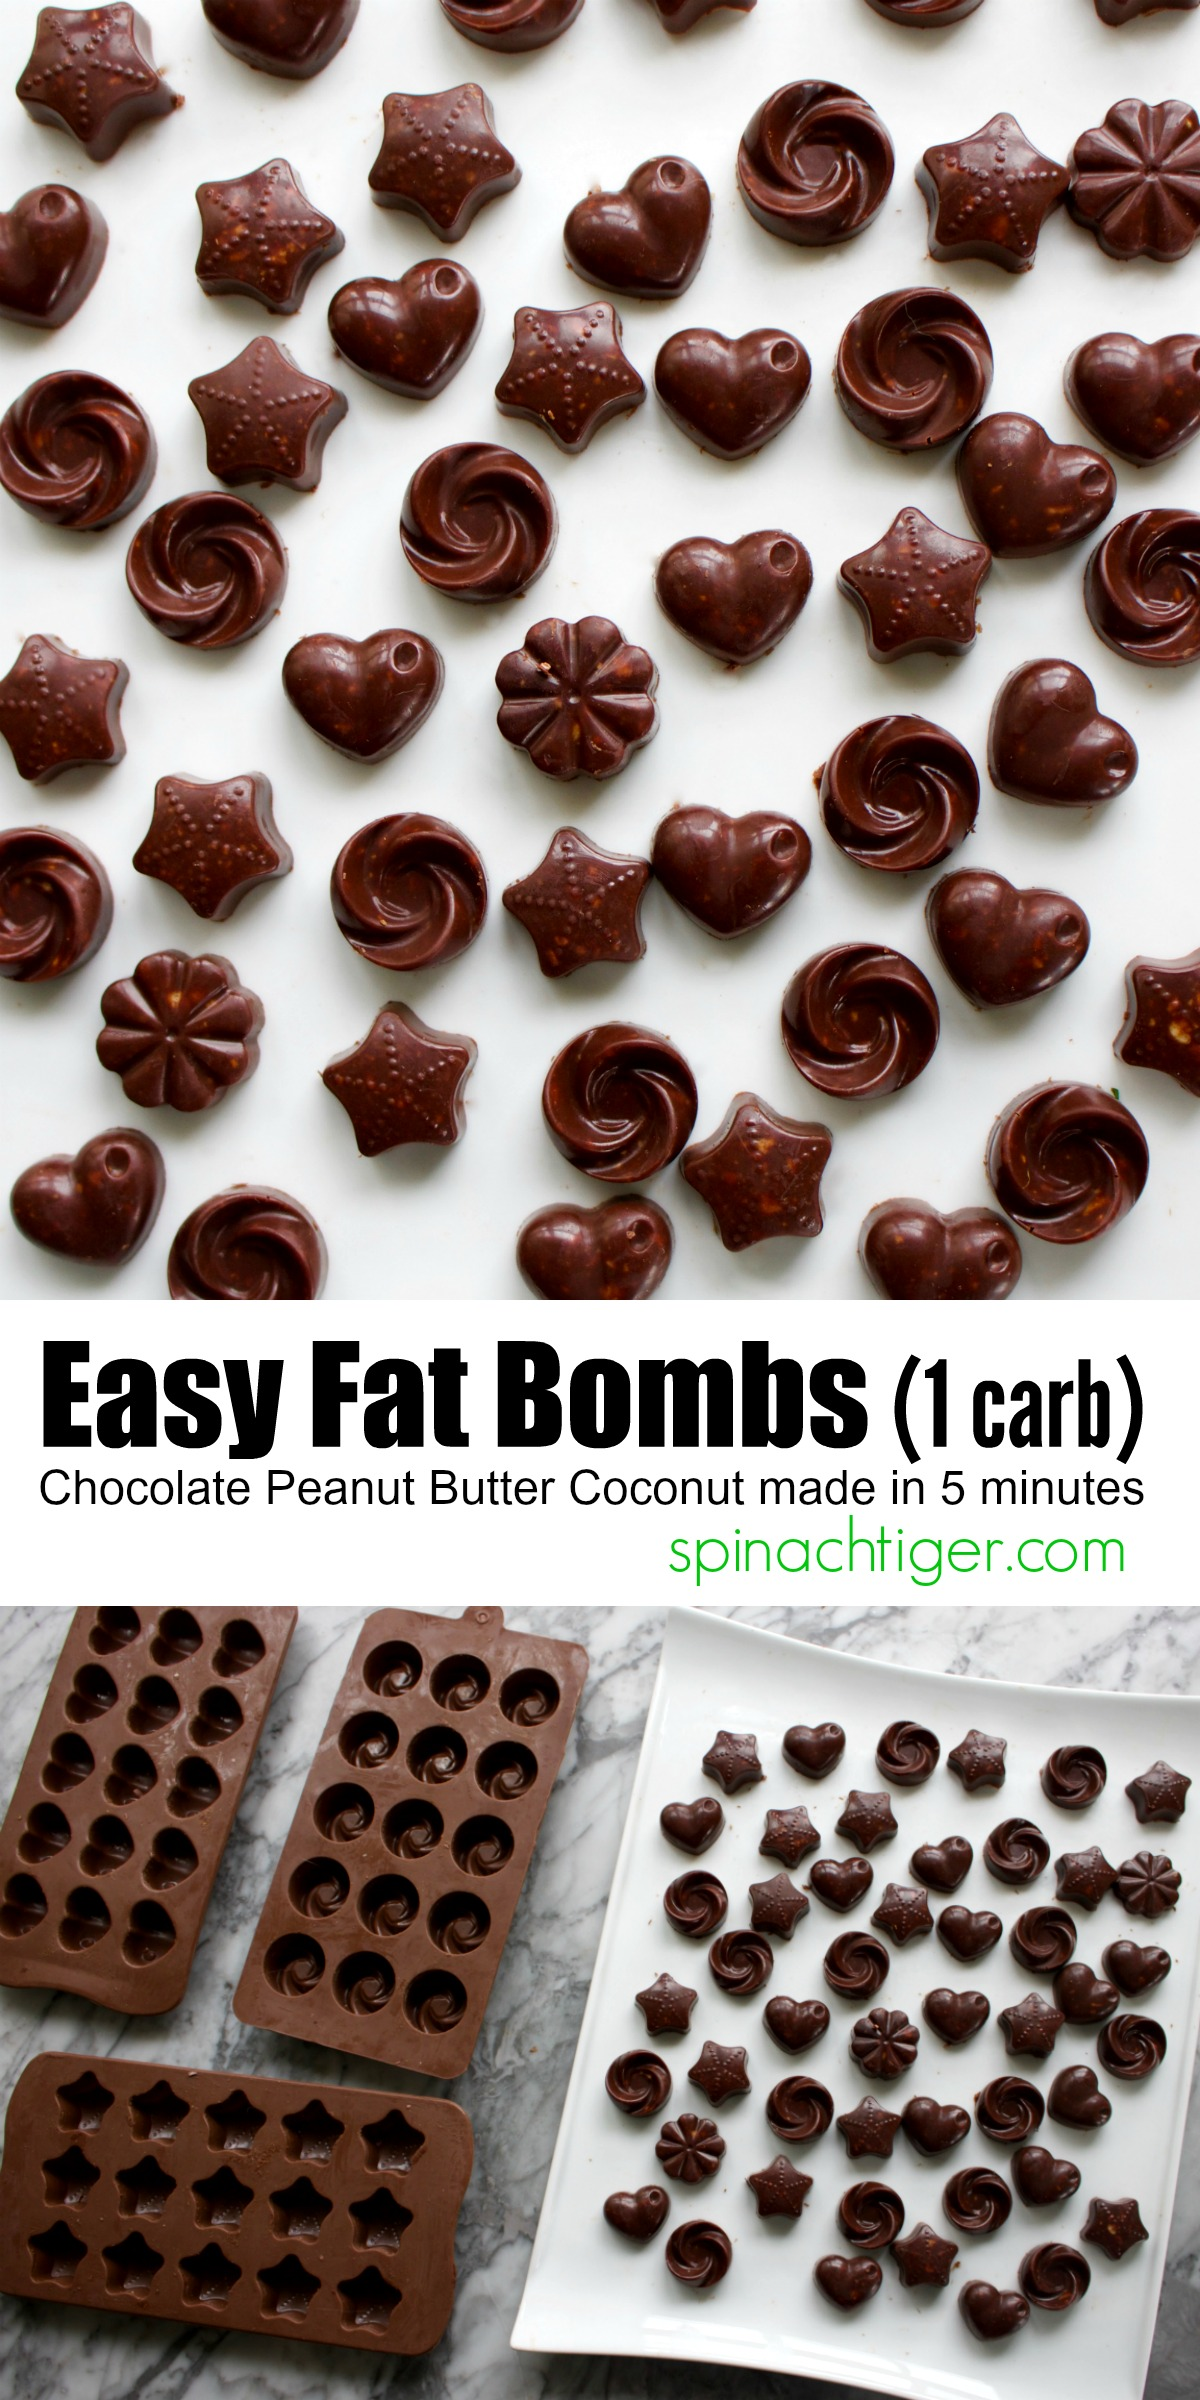 Easy Chocolate Peanut Butter Fat Bombs and How to Measure Peanut Butter easy! #fatbombs #spinachtiger (peanut butter, cocoa powder, coconut oil, butter, Swerve) #swerve via @angelaroberts